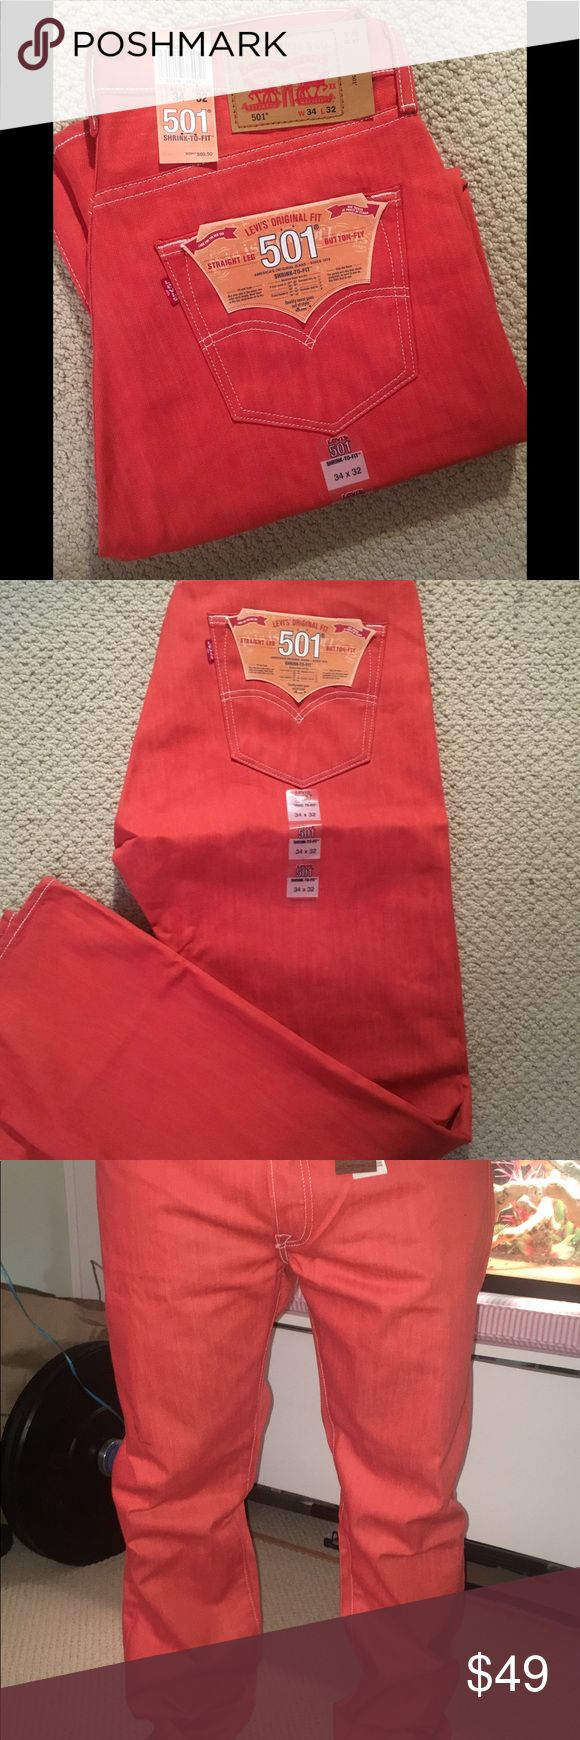 Men's Levi's Raw denim jeans NWT Check out this color!!! What?!?!? These jeans will have every head turning!! Love love love these jeans!!!  34wx32l button fly with straight leg! Won't last! Brand new with tags levis Jeans Straight